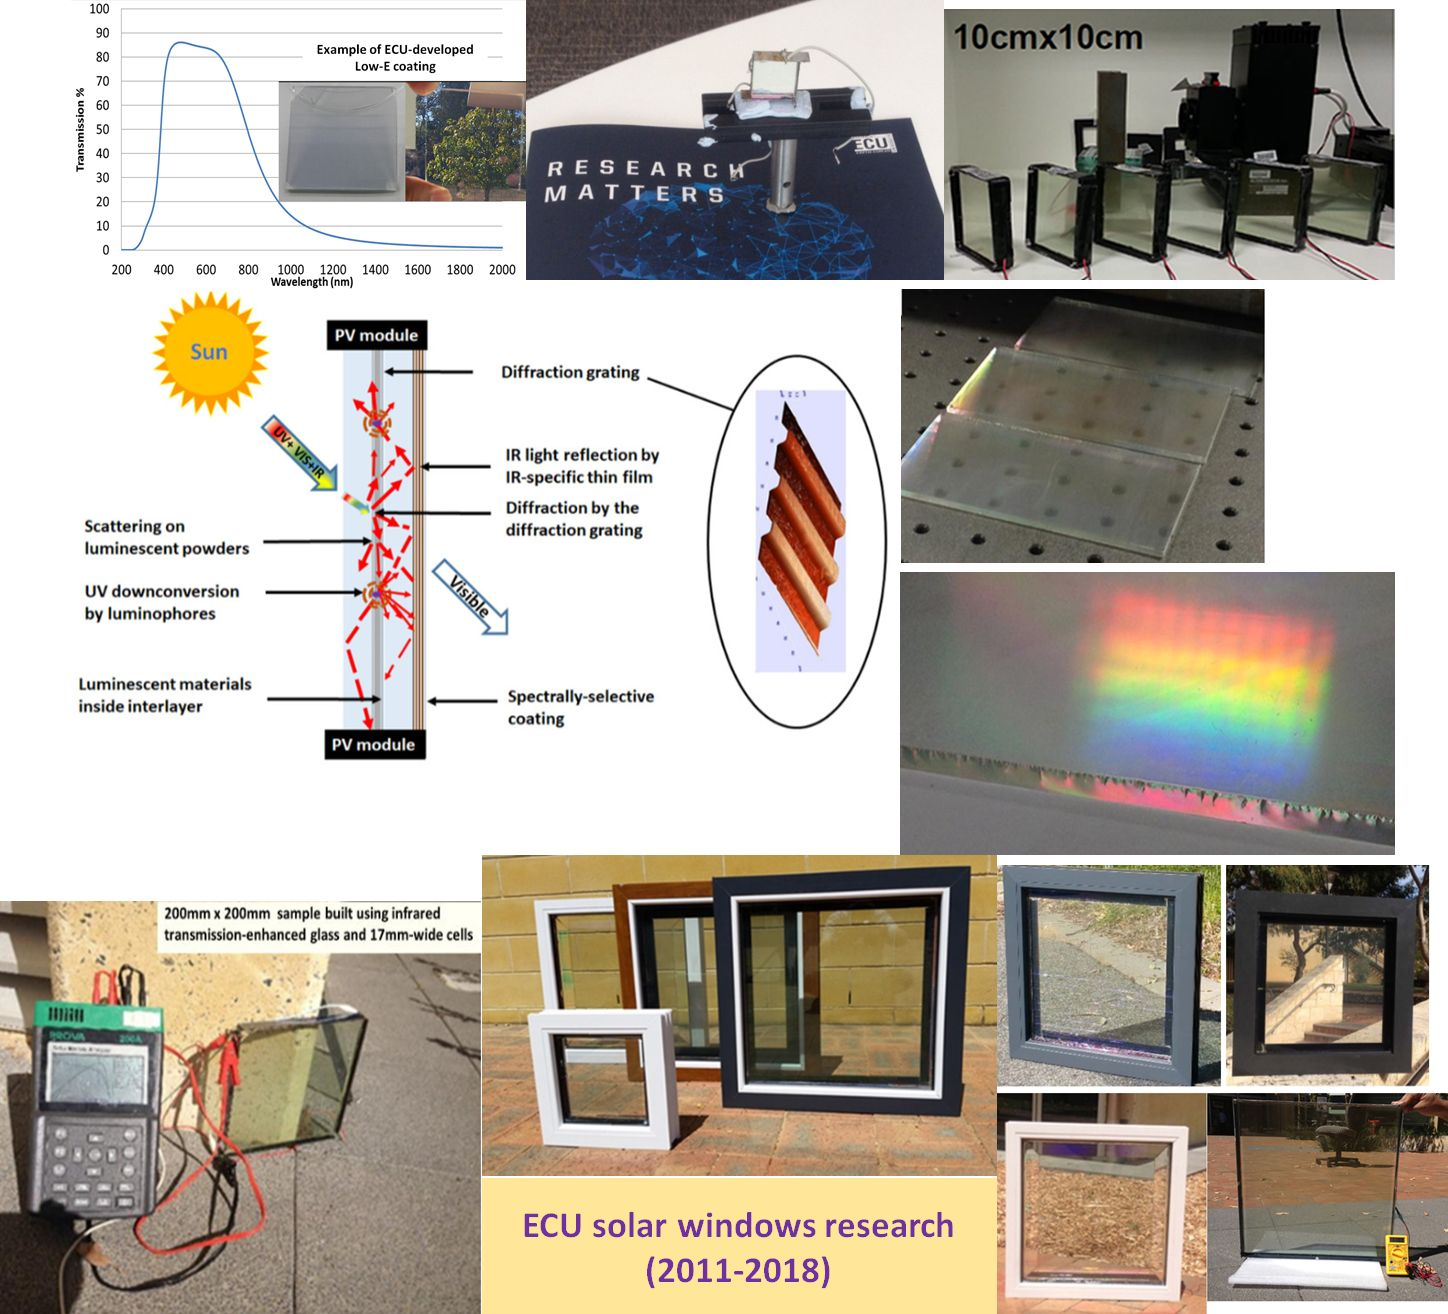 Figure 1. A principal diagram of solar window development milestones demonstrated by ECU research team.